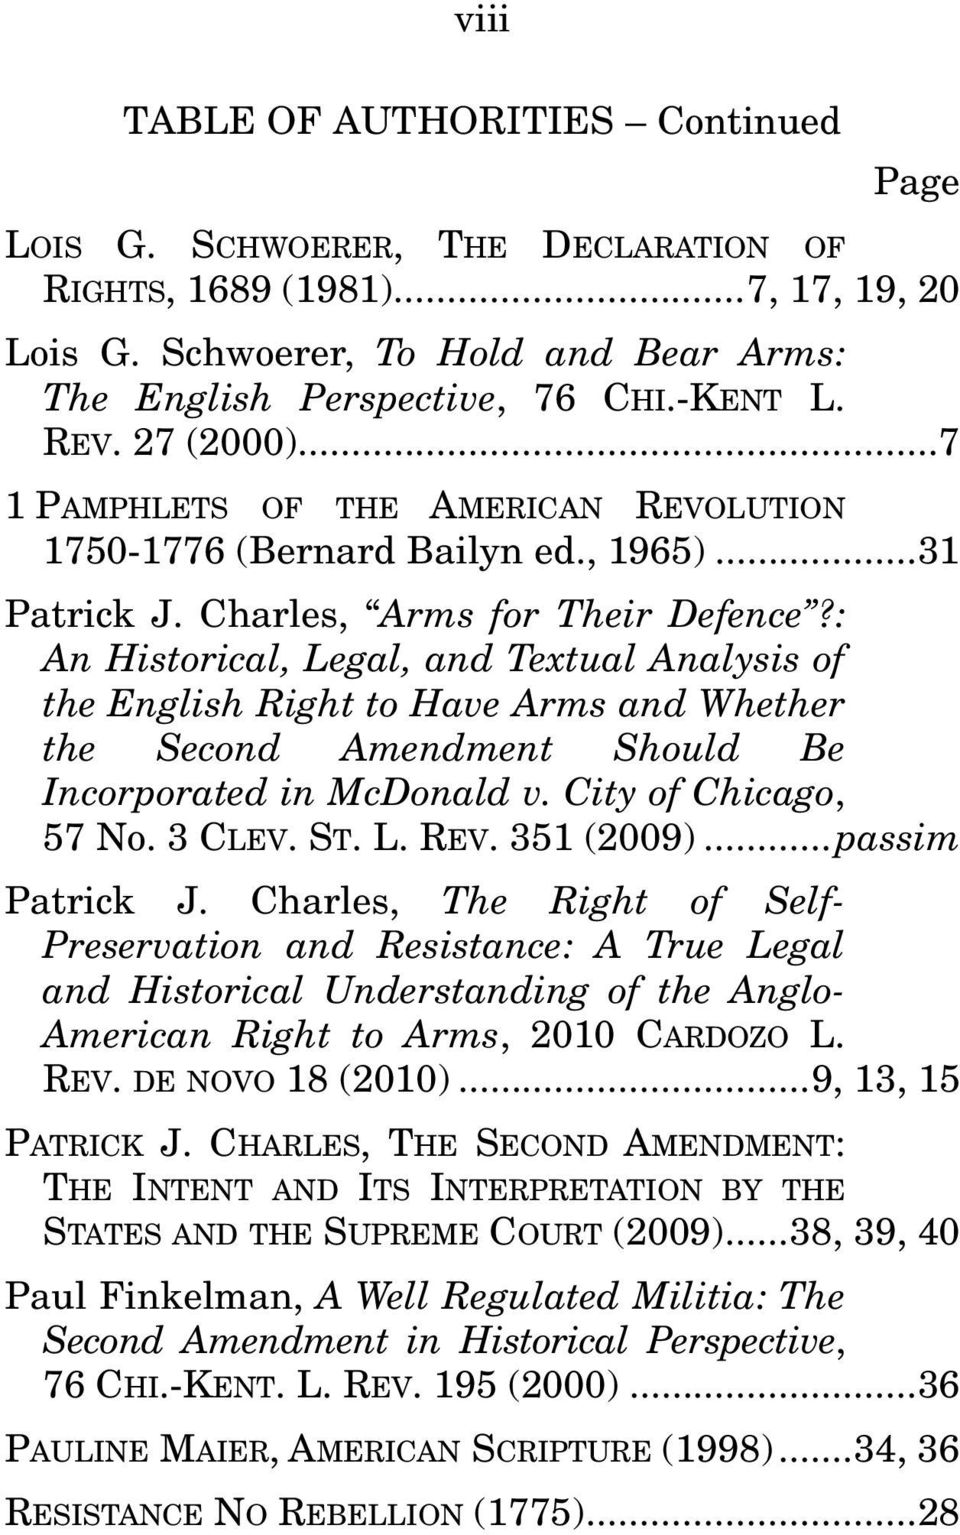 : An Historical, Legal, and Textual Analysis of the English Right to Have Arms and Whether the Second Amendment Should Be Incorporated in McDonald v. City of Chicago, 57 No. 3 CLEV. ST. L. REV.